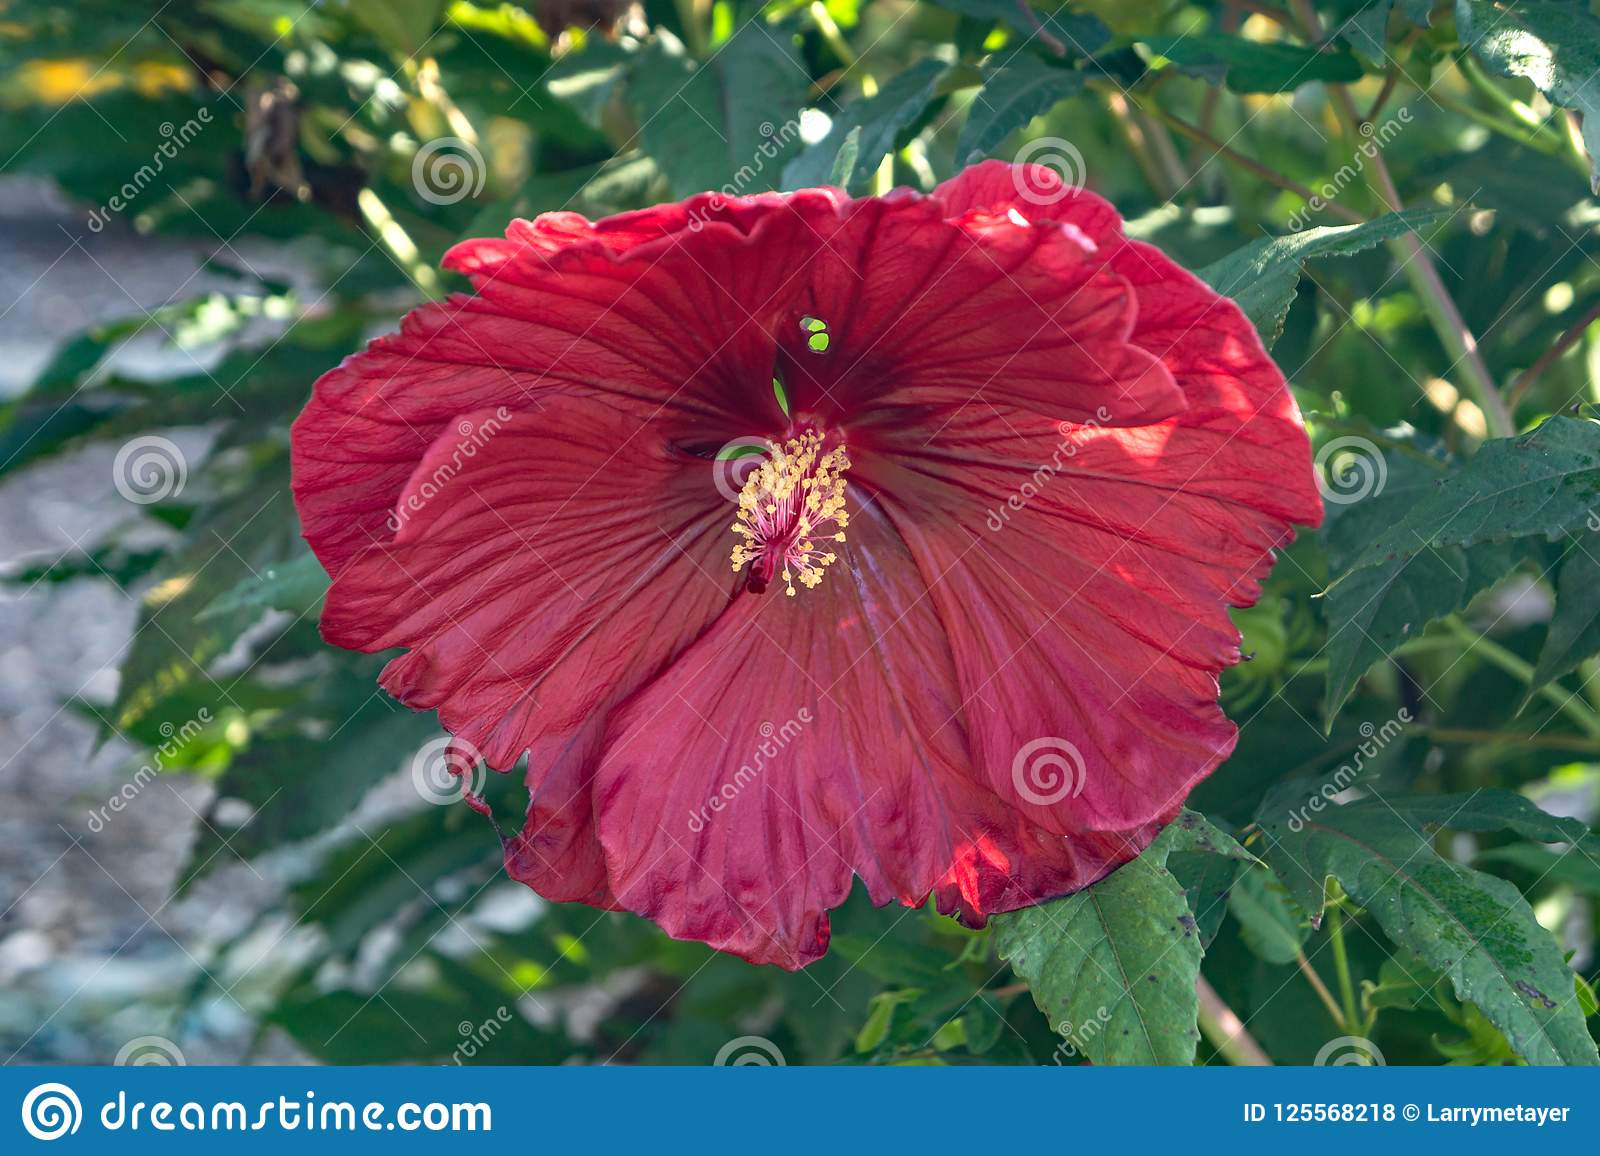 Close up of a large hibiscus flower stock photo image of a close up of a large hibiscus flower growing in a local neighborhood garden izmirmasajfo